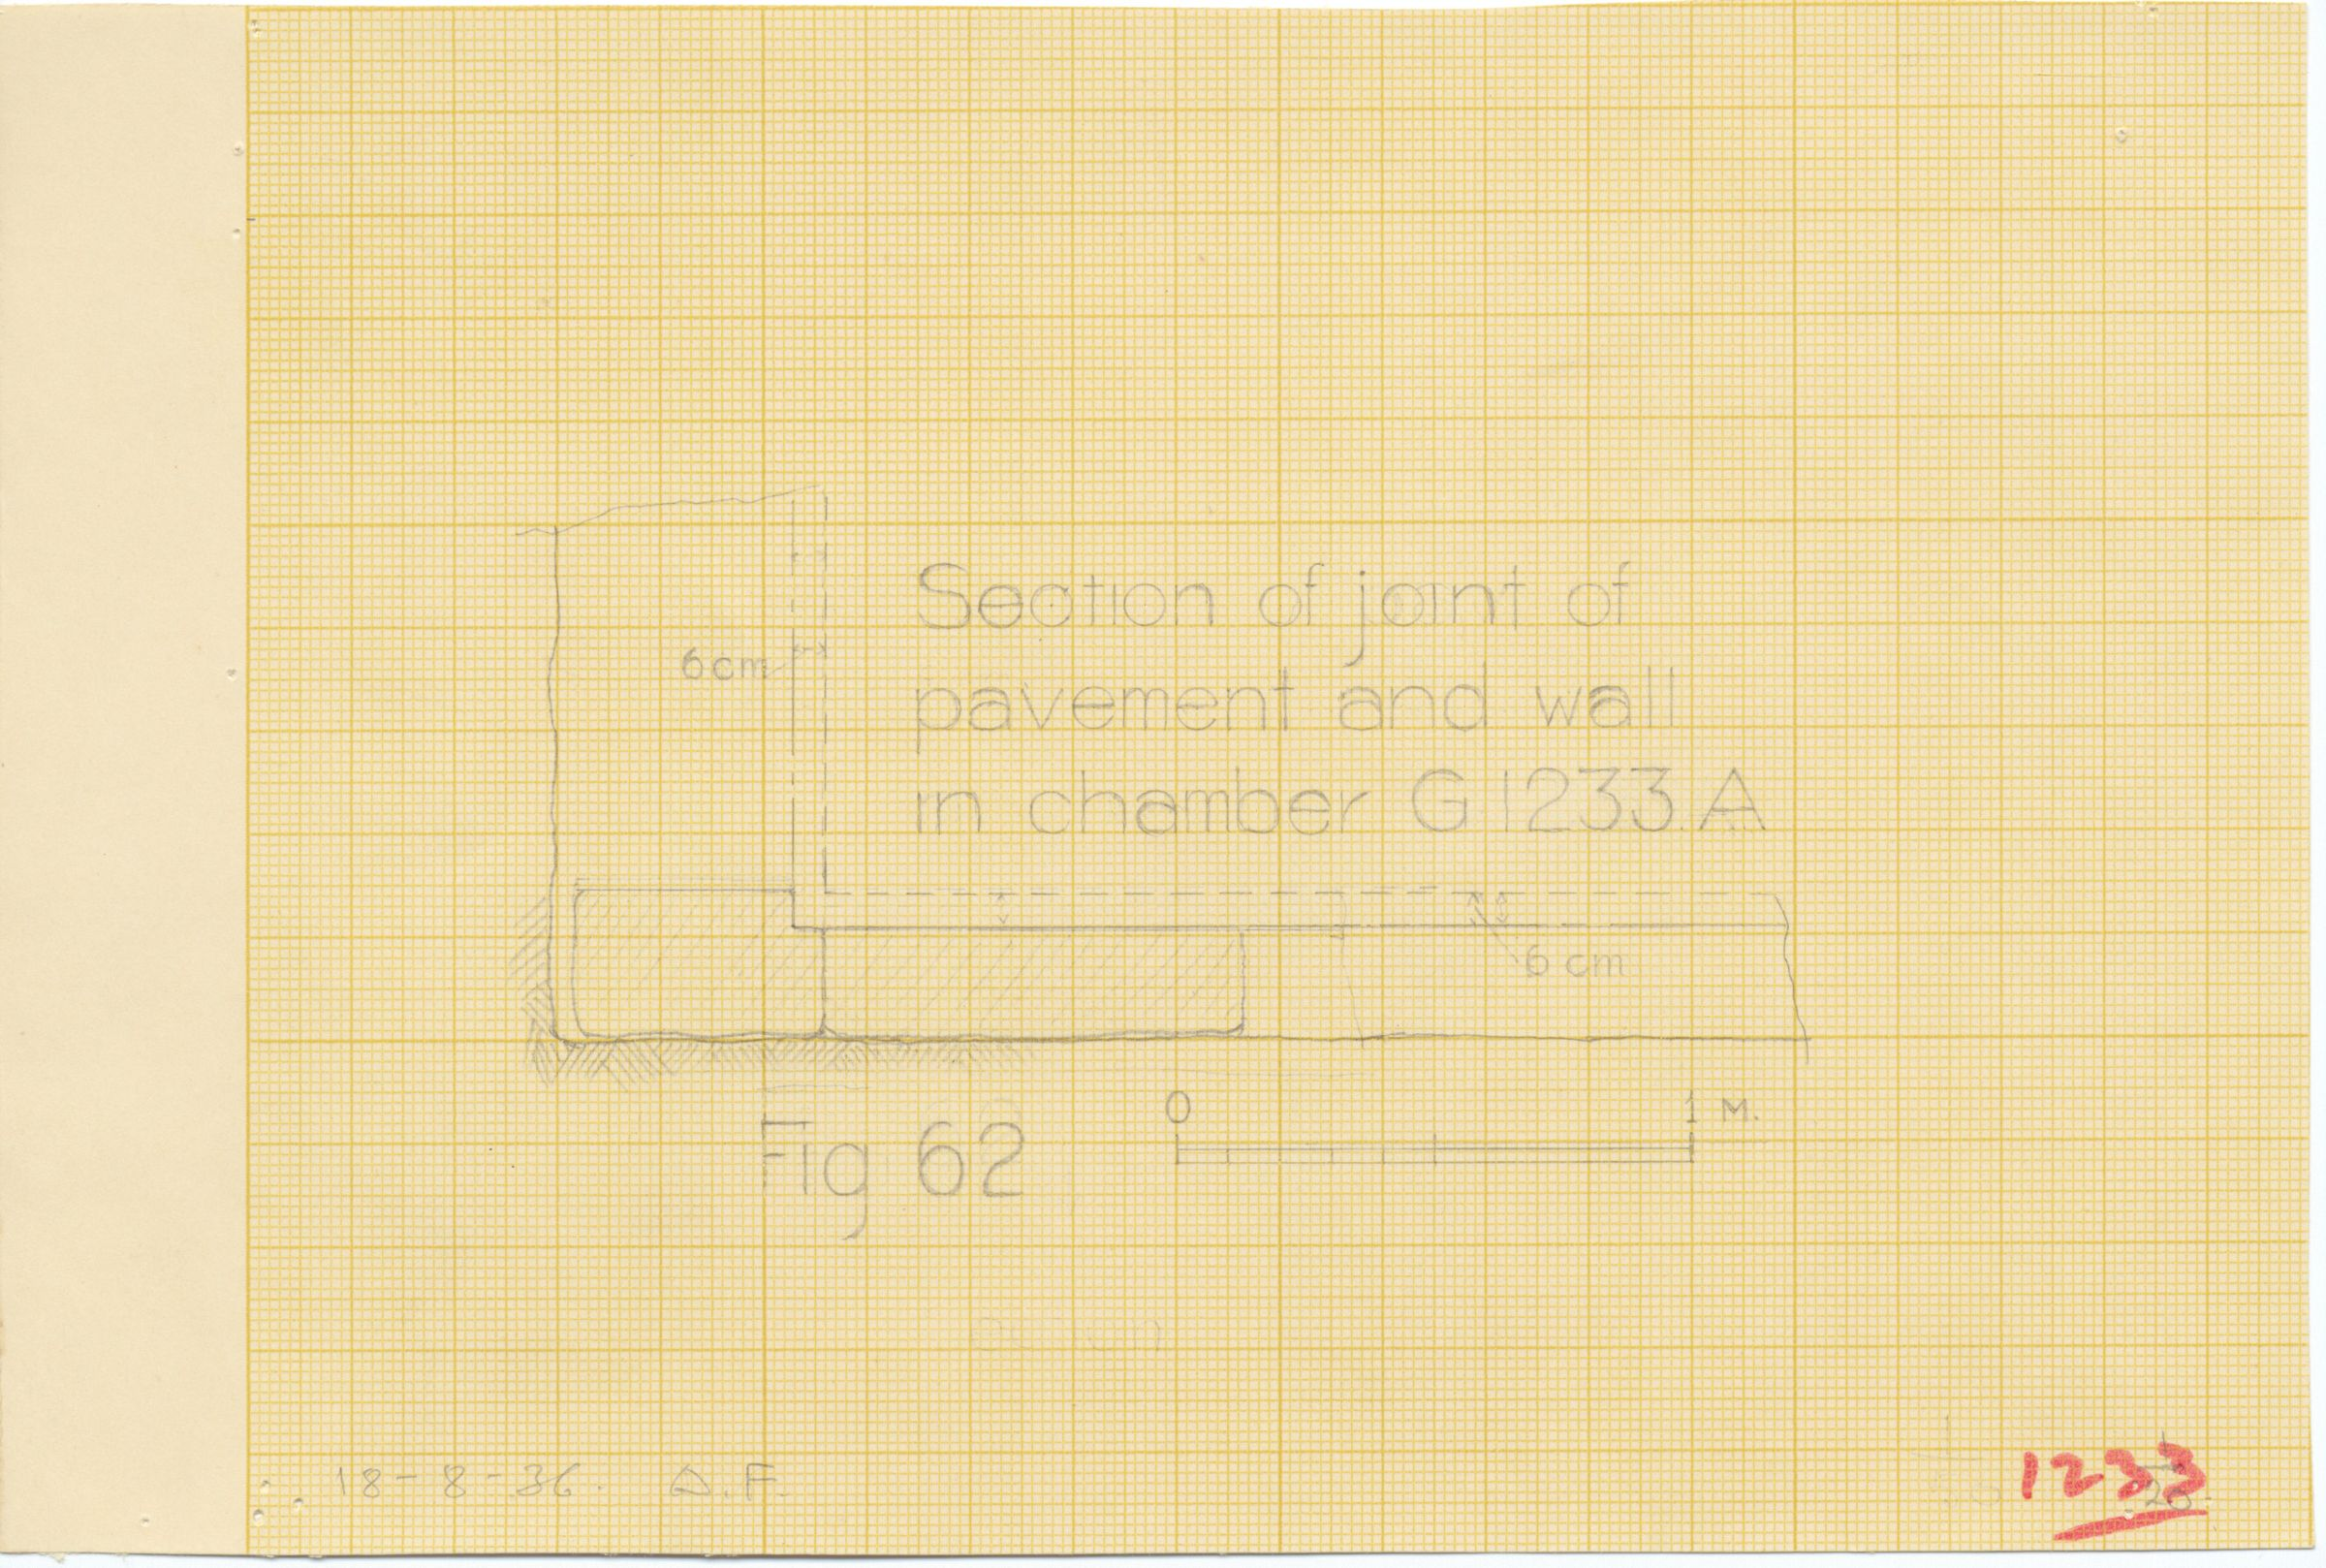 Maps and plans: G 1233, Shaft A, section of joint of pavement and wall in chamber